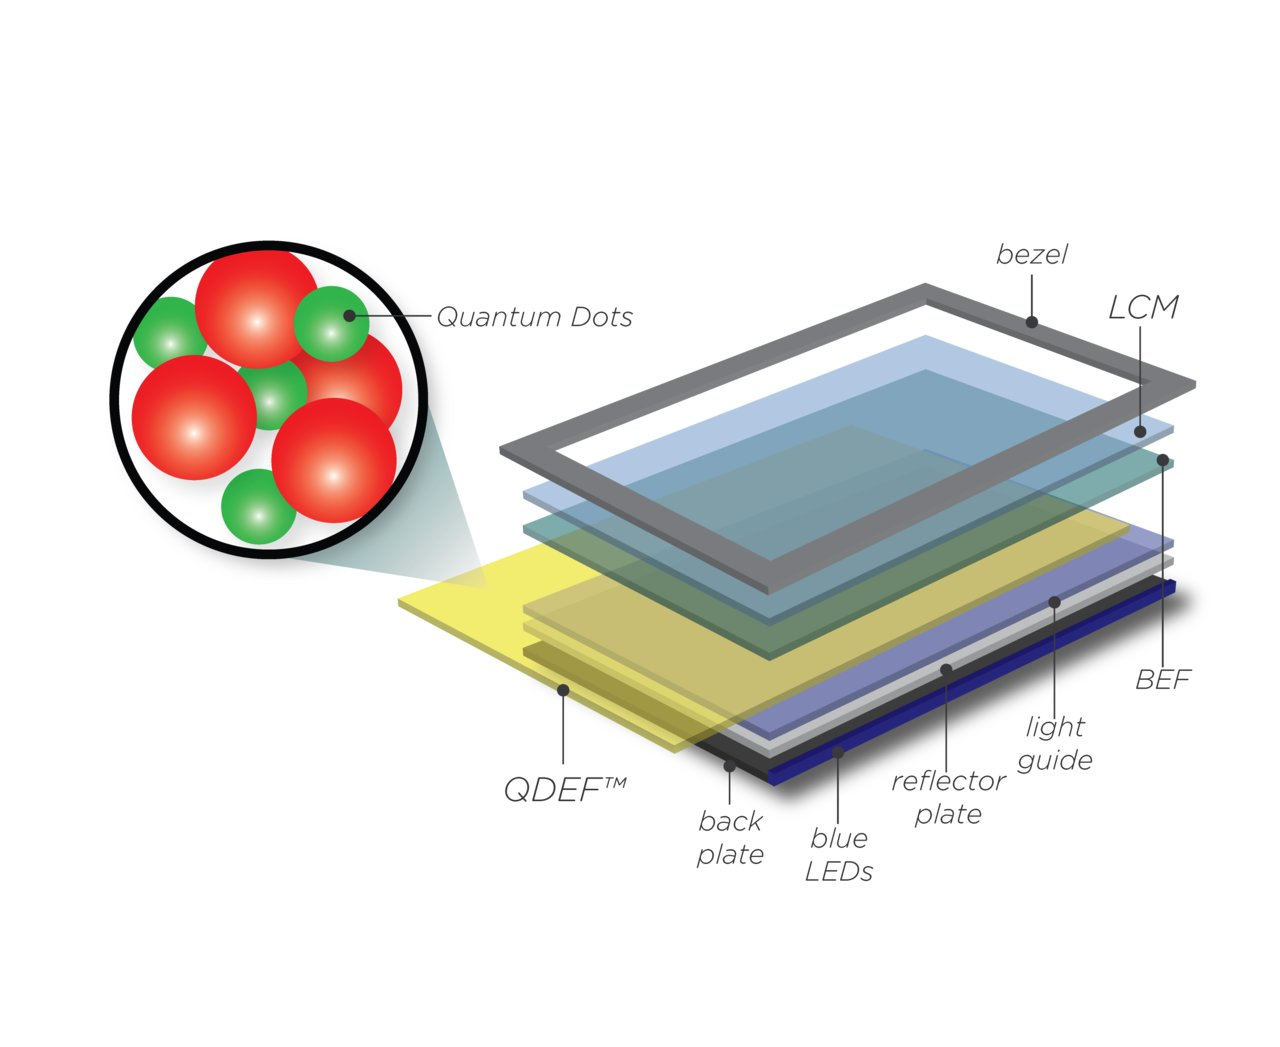 Quantum-Dot-Display im Schema